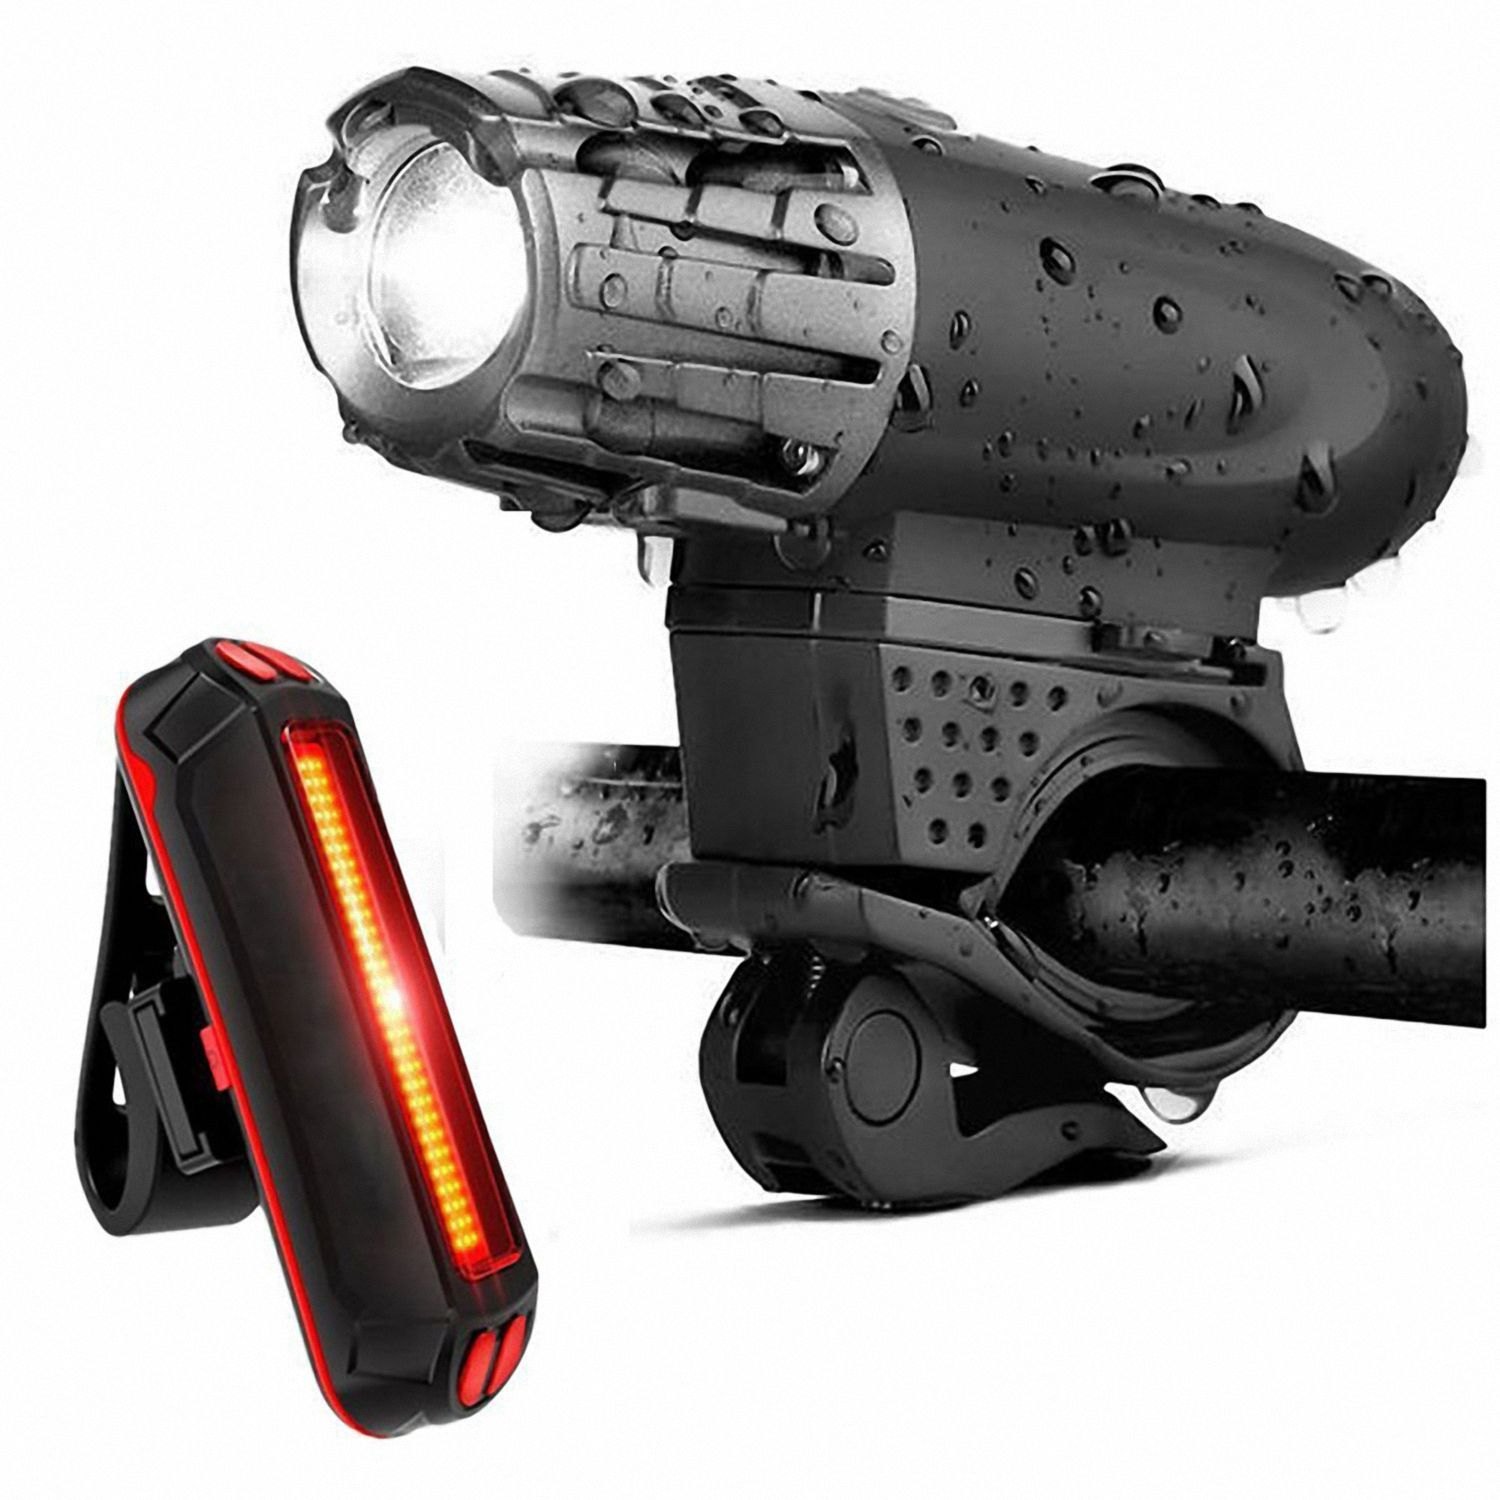 <font><b>Bike</b></font> <font><b>Lights</b></font> Bicycle <font><b>Lights</b></font> Front and Back <font><b>USB</b></font> Rechargeable <font><b>Bike</b></font> <font><b>Light</b></font> <font><b>Set</b></font> Super Bright Front and Rear Flashlight LED Headlight image